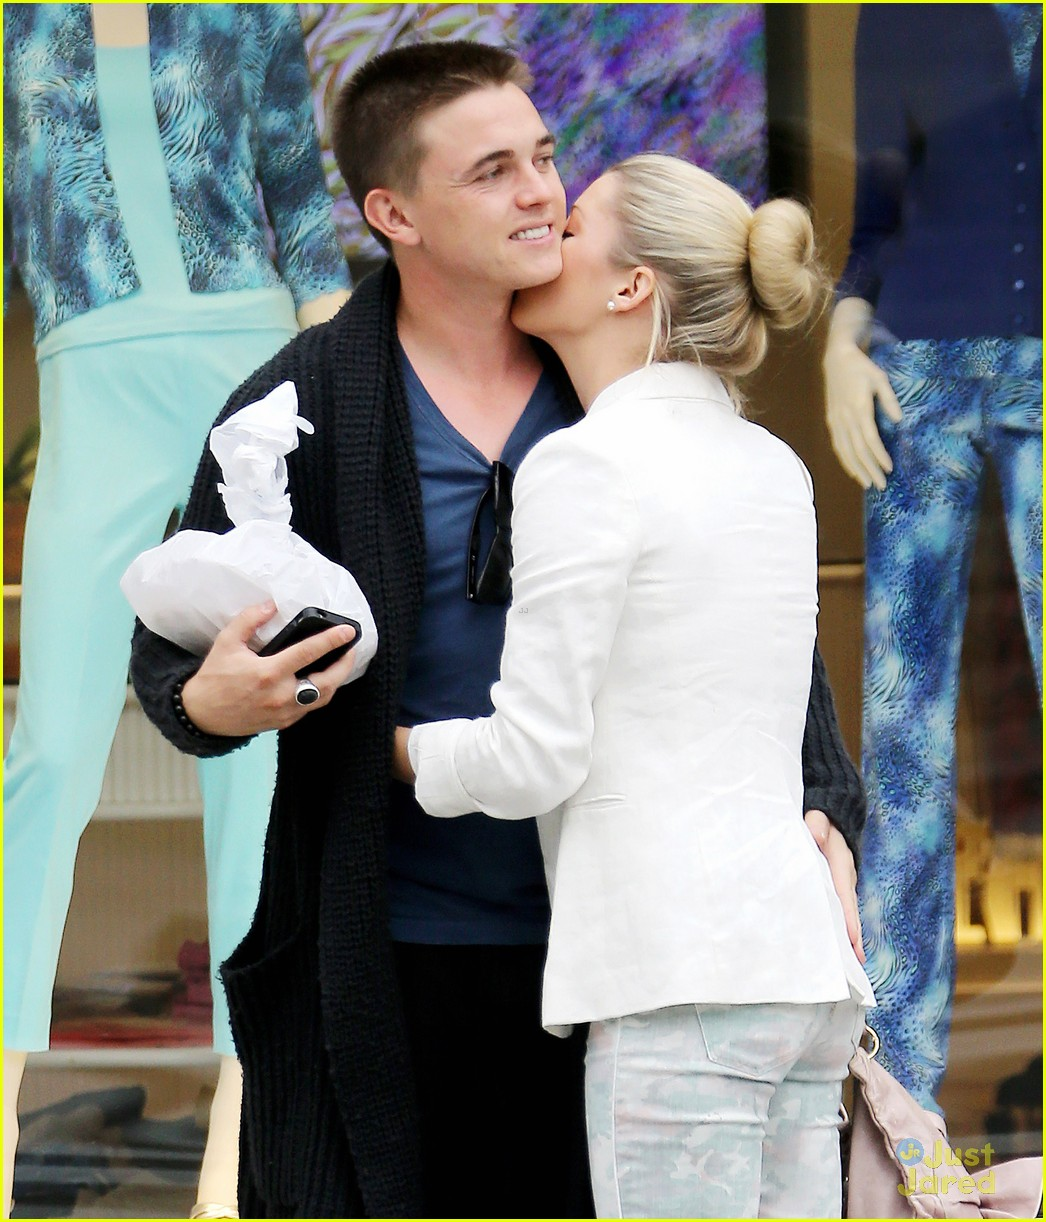 Jesse McCartney with beautiful, Girlfriend Katie Peterson